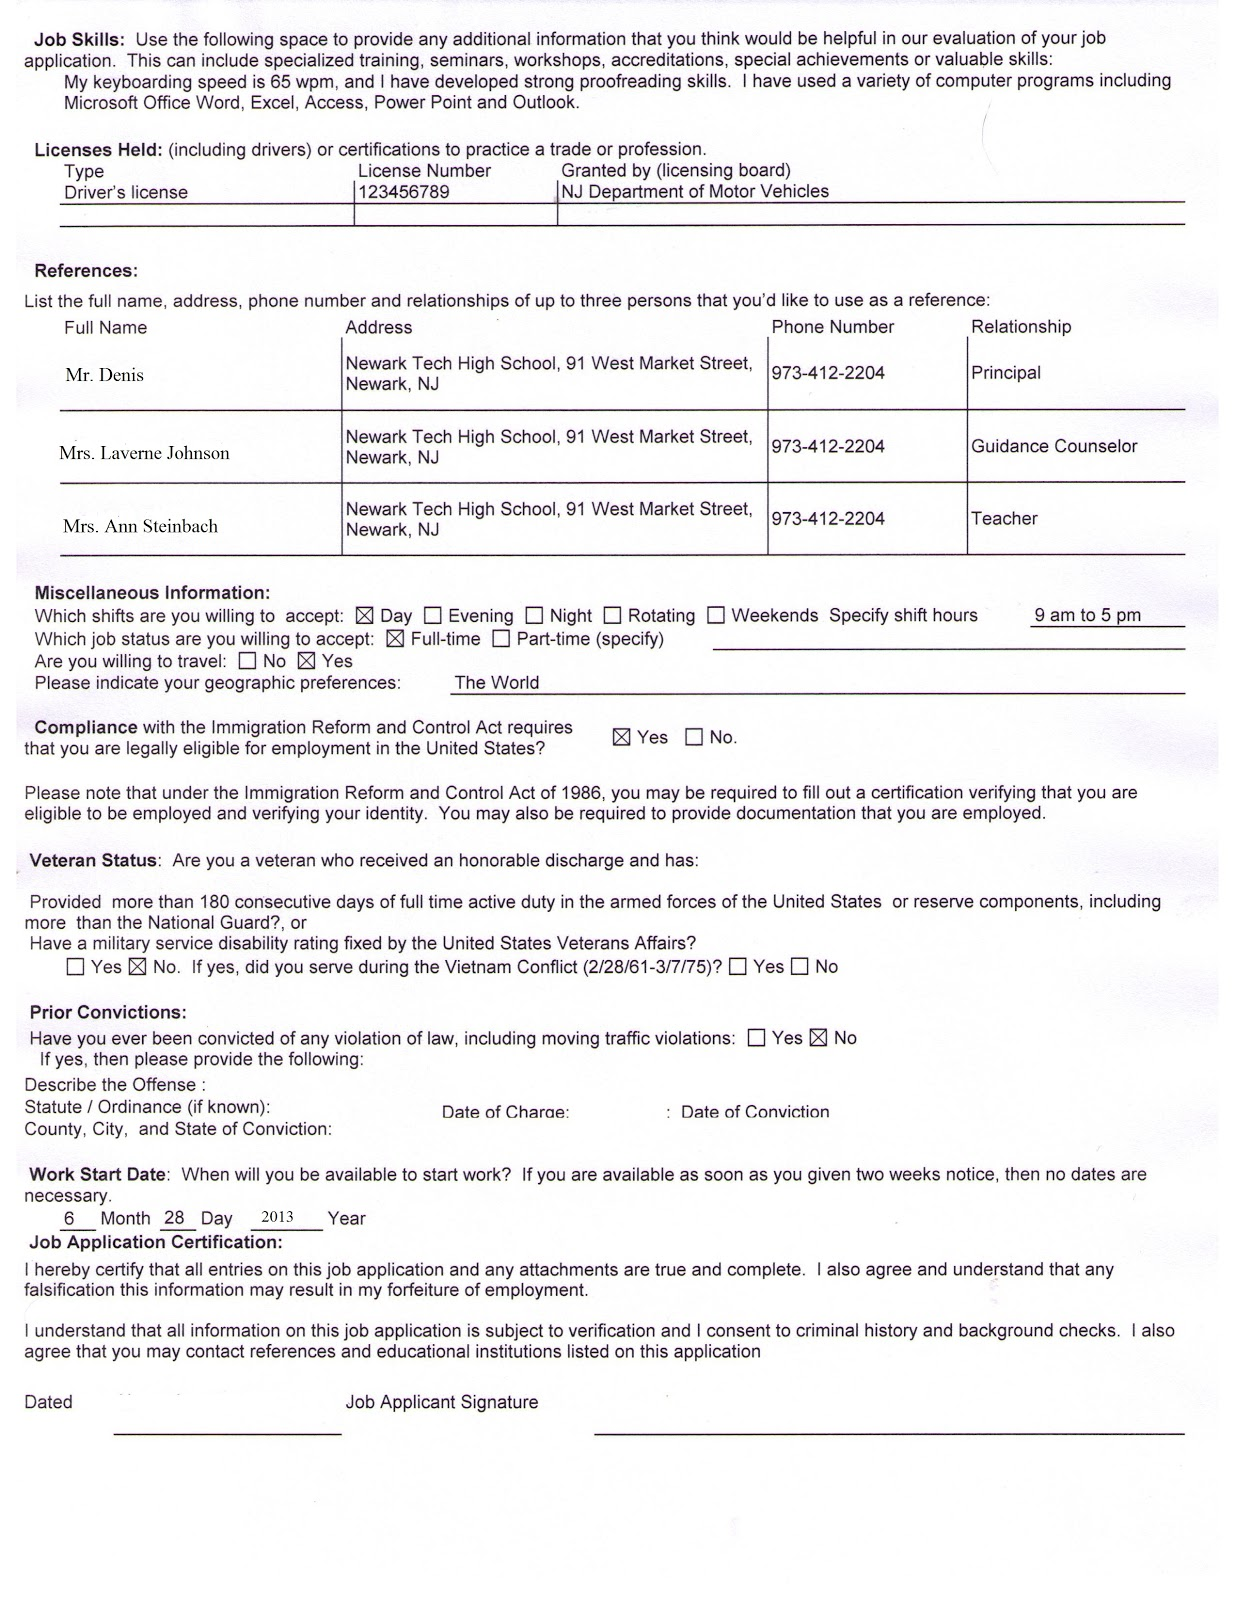 newark tech high school sample completed job application sample completed job application